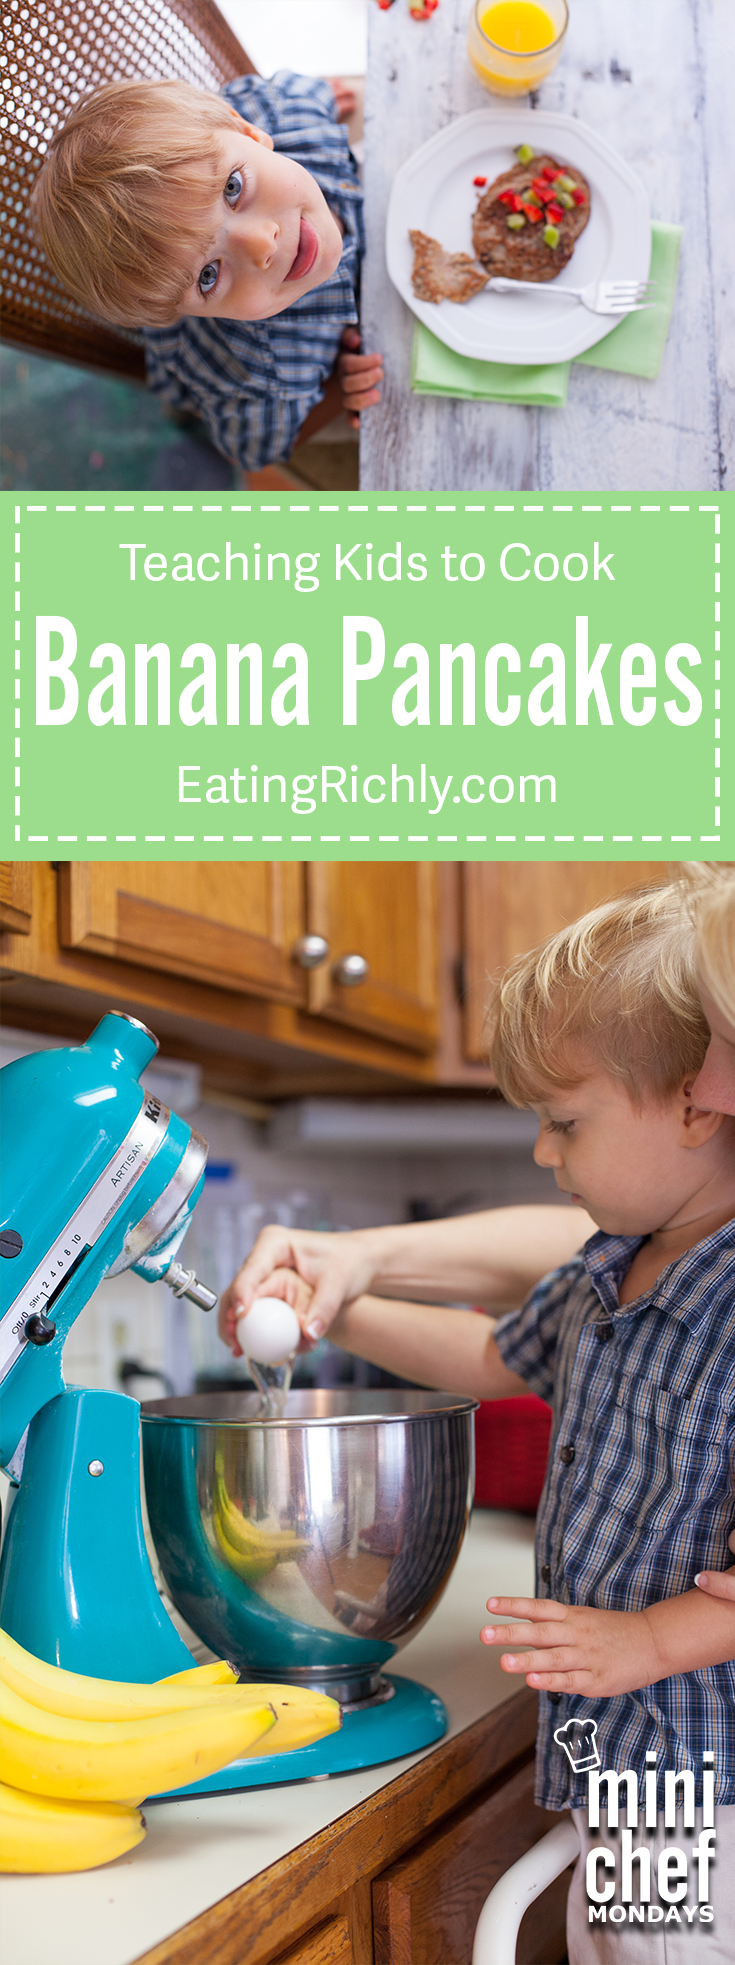 How to make banana pancakes, gluten free, grain free, just eggs cinnamon and bananas. Step by step photos of my toddler making them! From EatingRichly.com